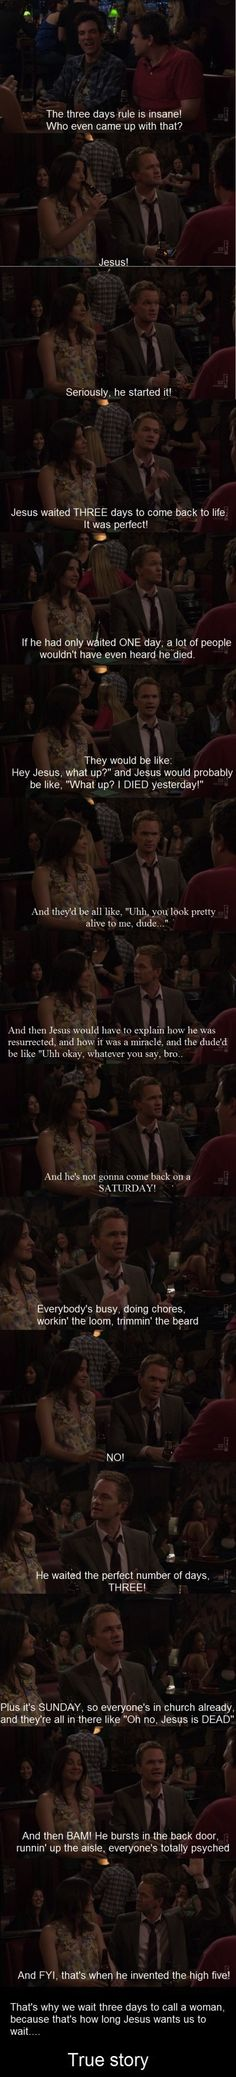 The Three Days Rule Explained..by Barney. One of my absolute favorite HIMYM moments. We were laughing so hard, we had to rewind and watch it again just to get it all.